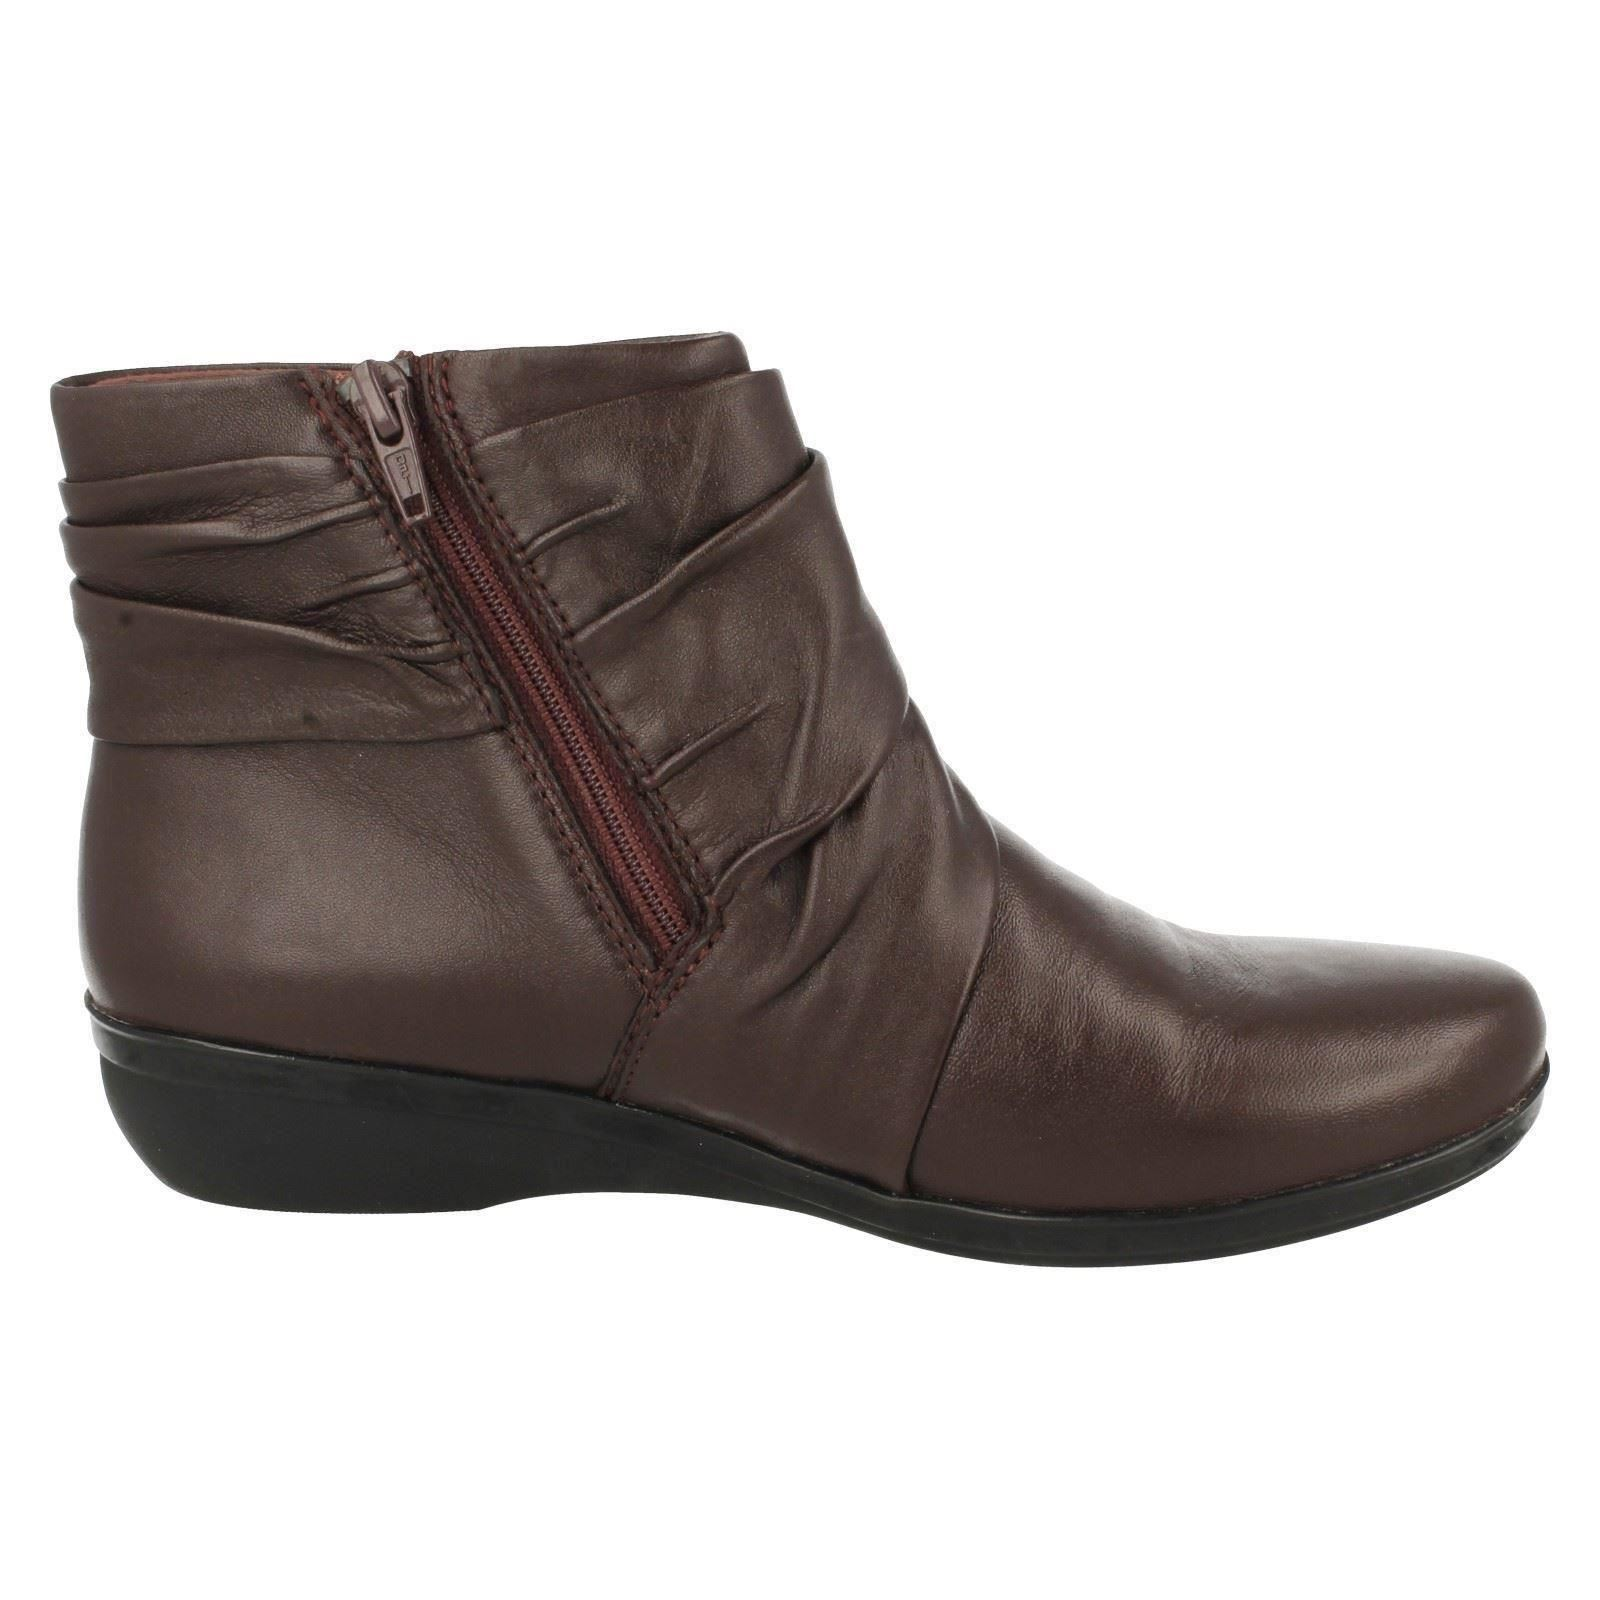 Men's/Women's Ladies Clarks Ankle Boots 'Everlay price, Mandy' Crazy price, 'Everlay Birmingham Elegant and sturdy packaging Preferred boutique d24d48